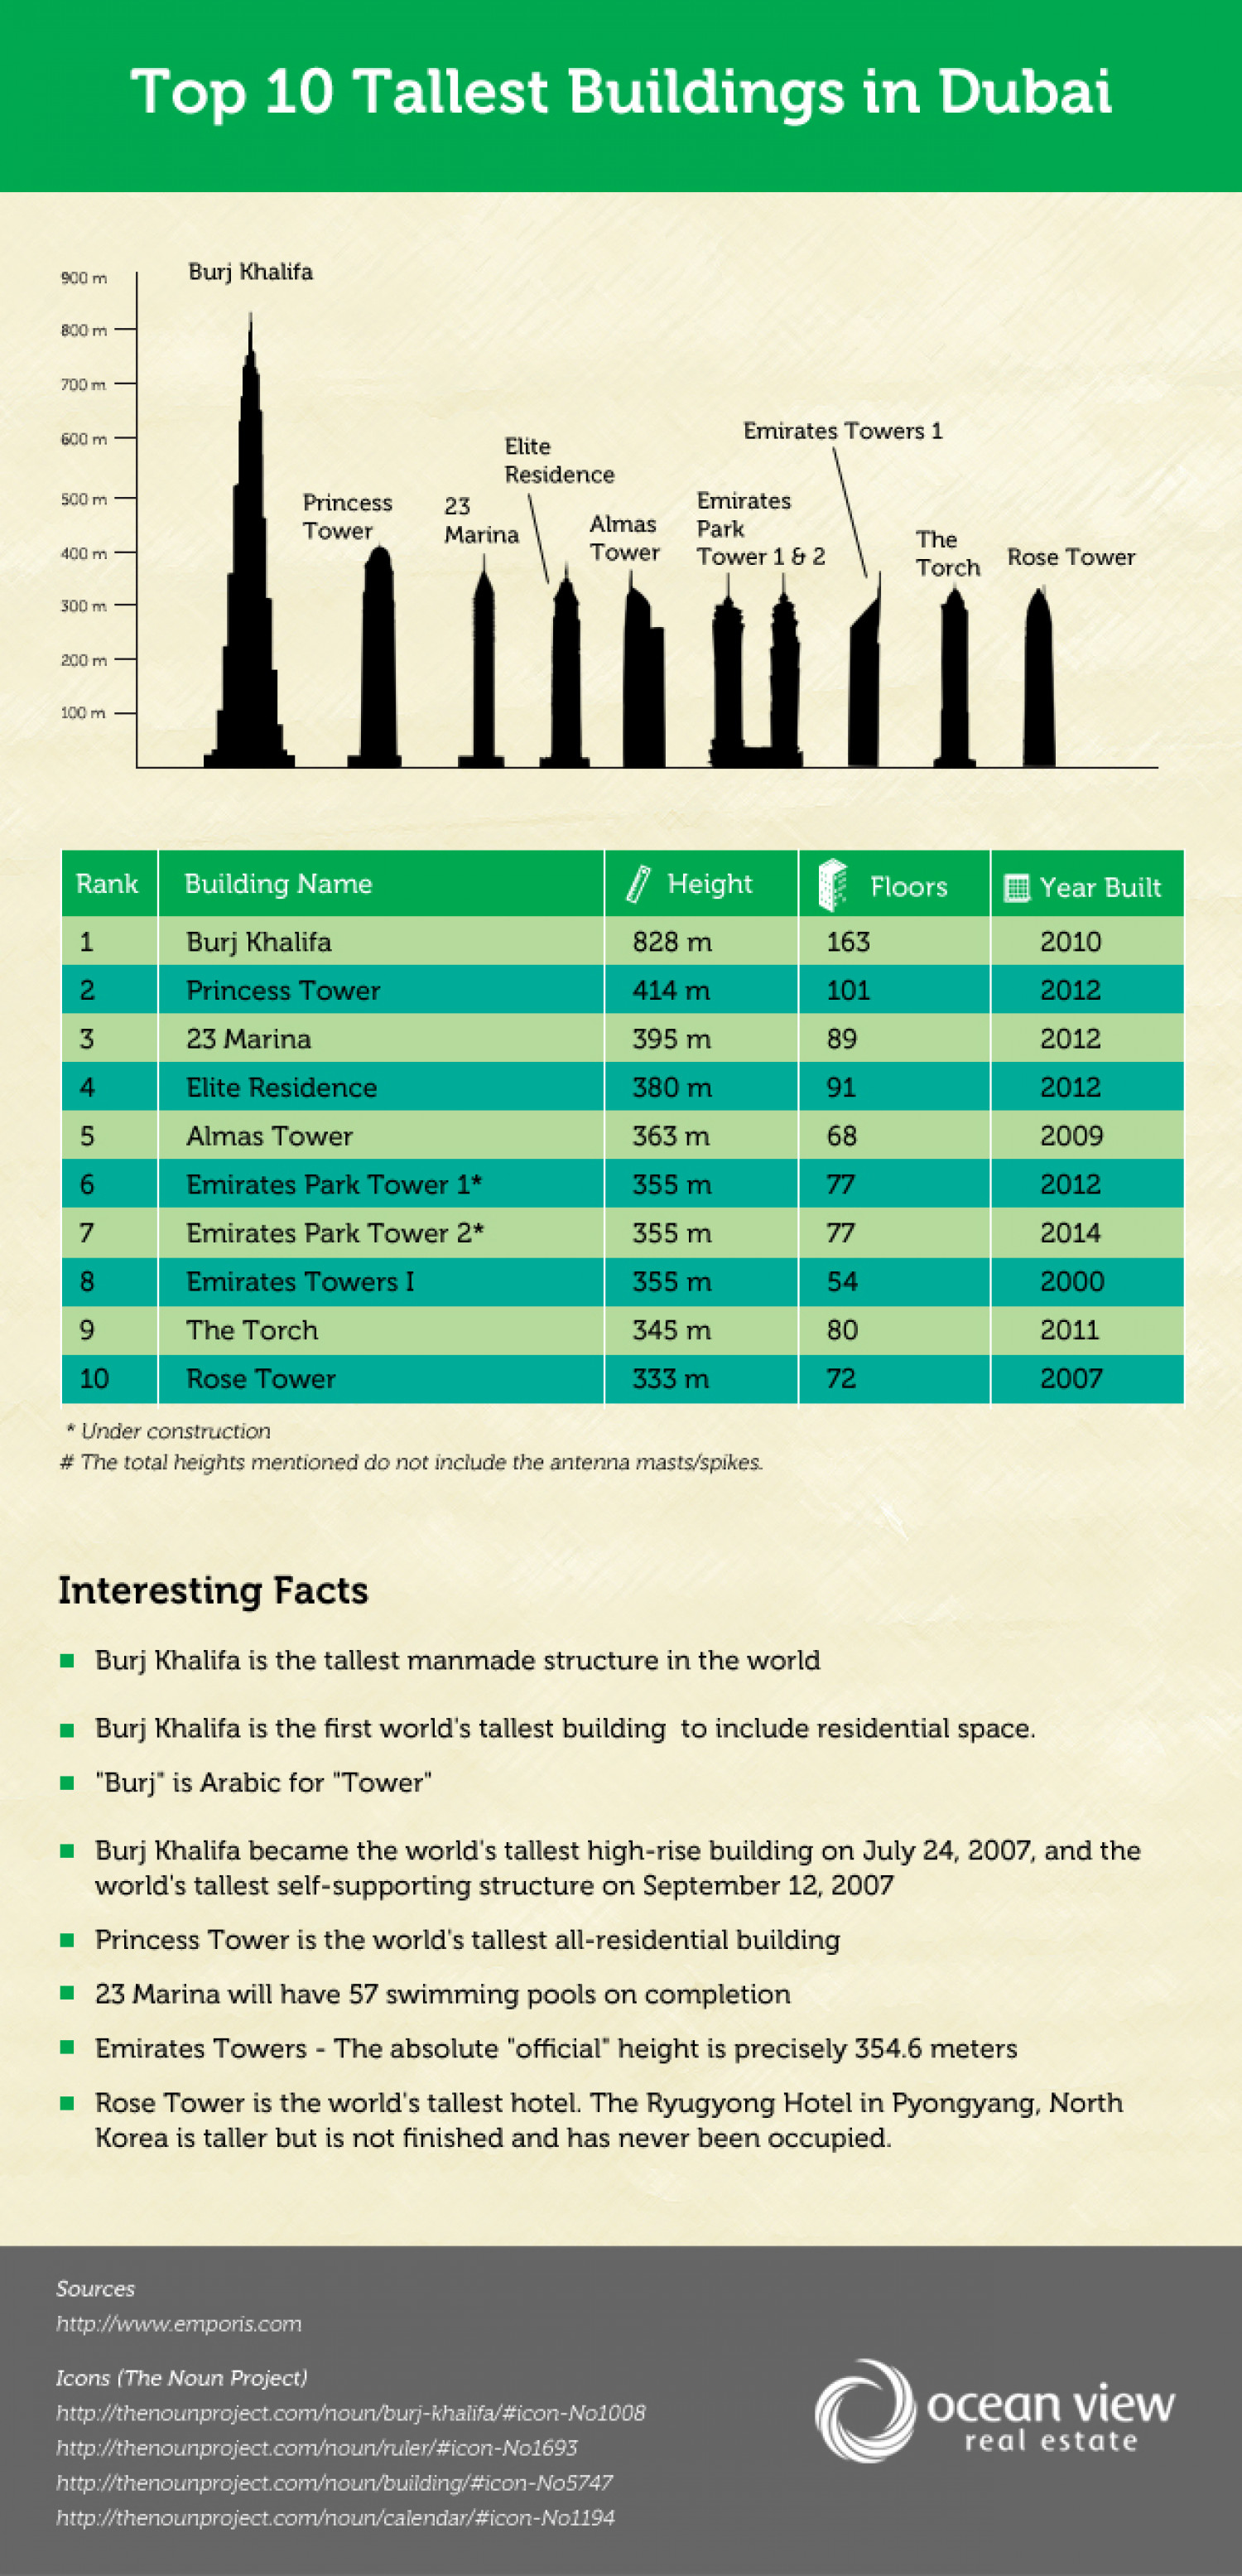 Top 10 Tallest Buildings in Dubai Infographic